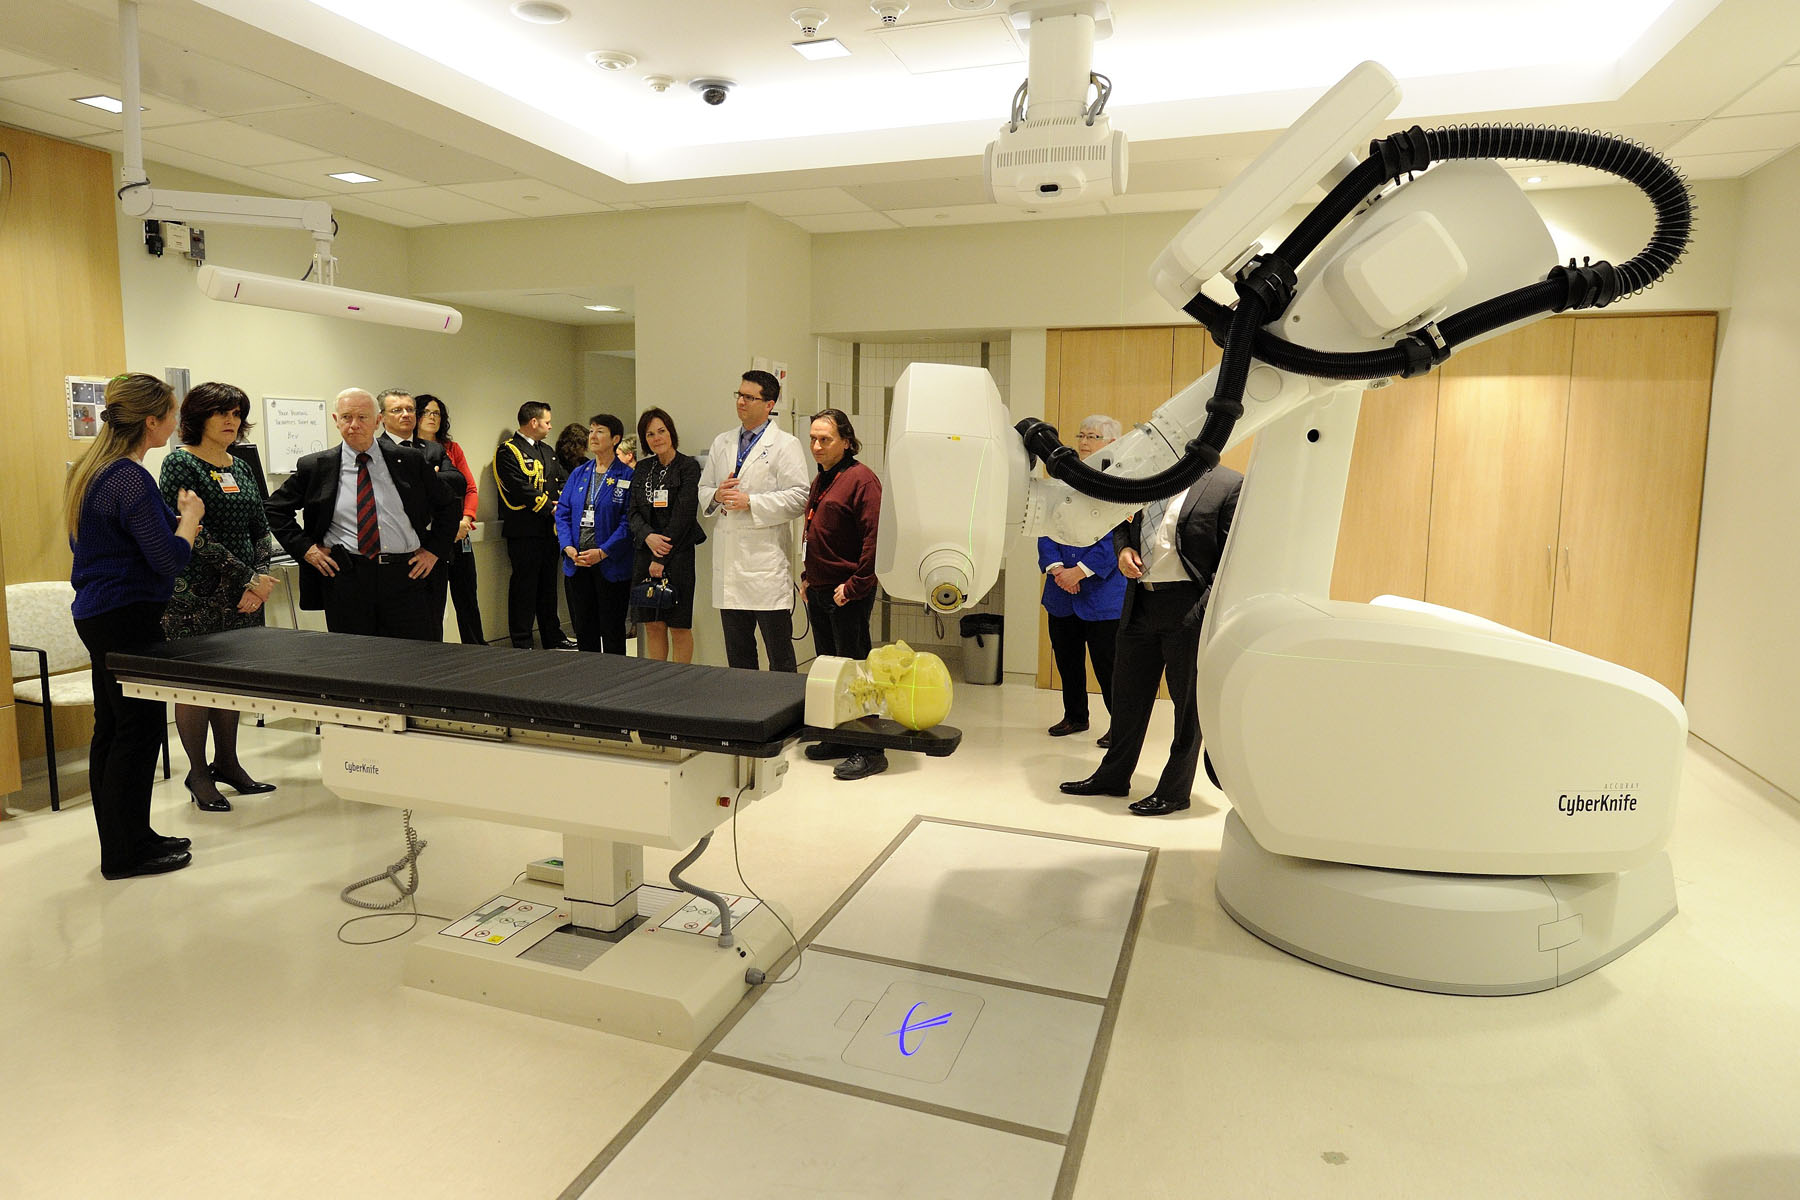 The Governor General ended his visit to the Ottawa Hospital at the CyberKnife robotic radiosurgery system.